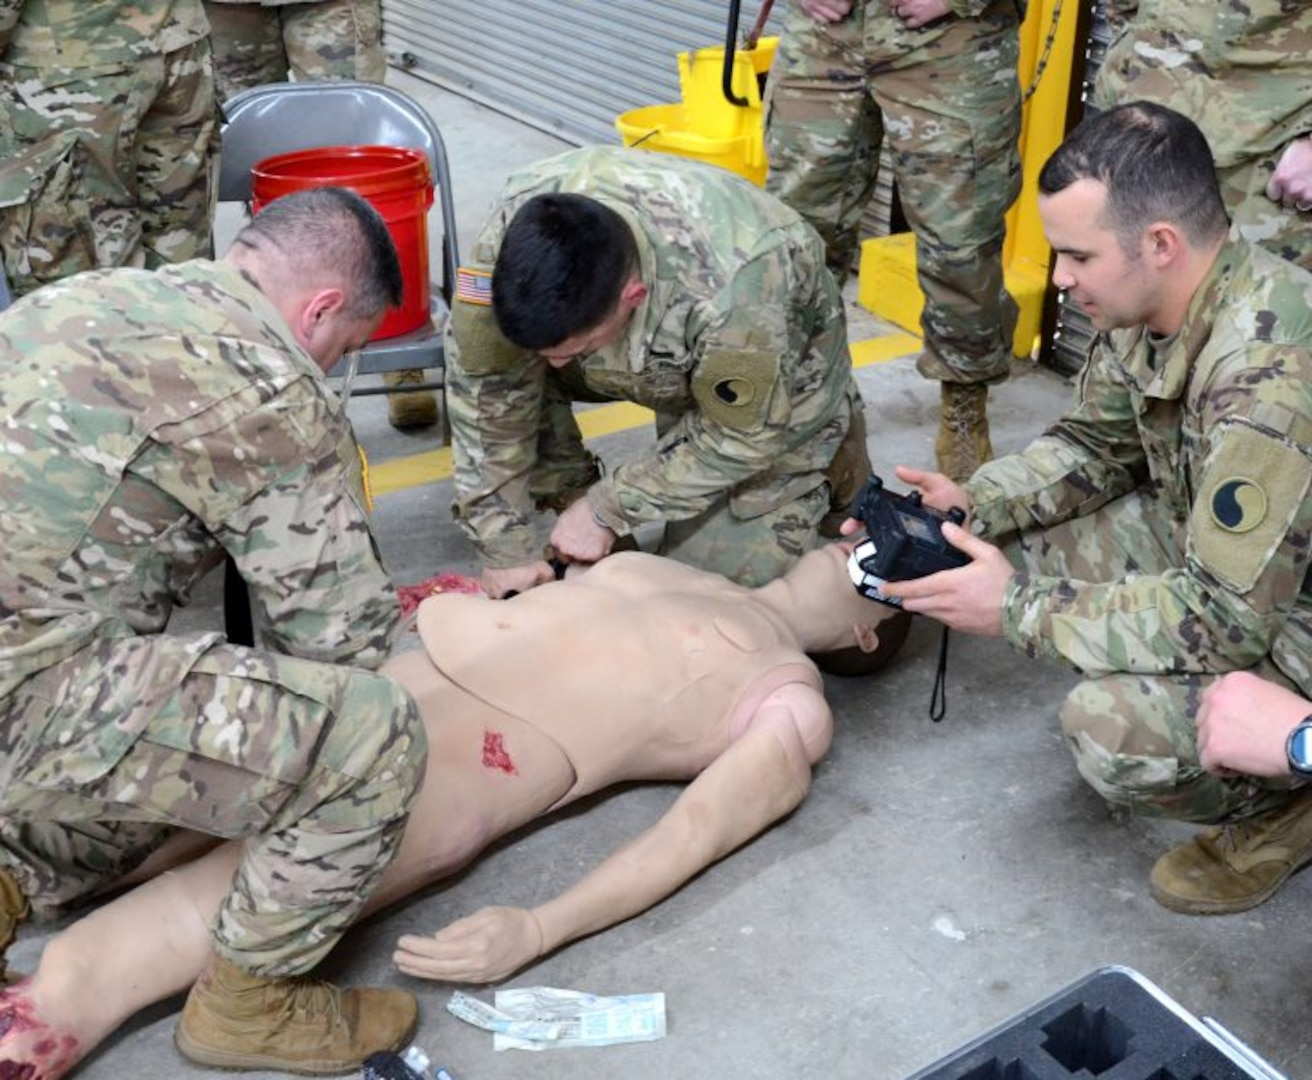 Medics train on new lifelike simulated patient at Fort Pickett